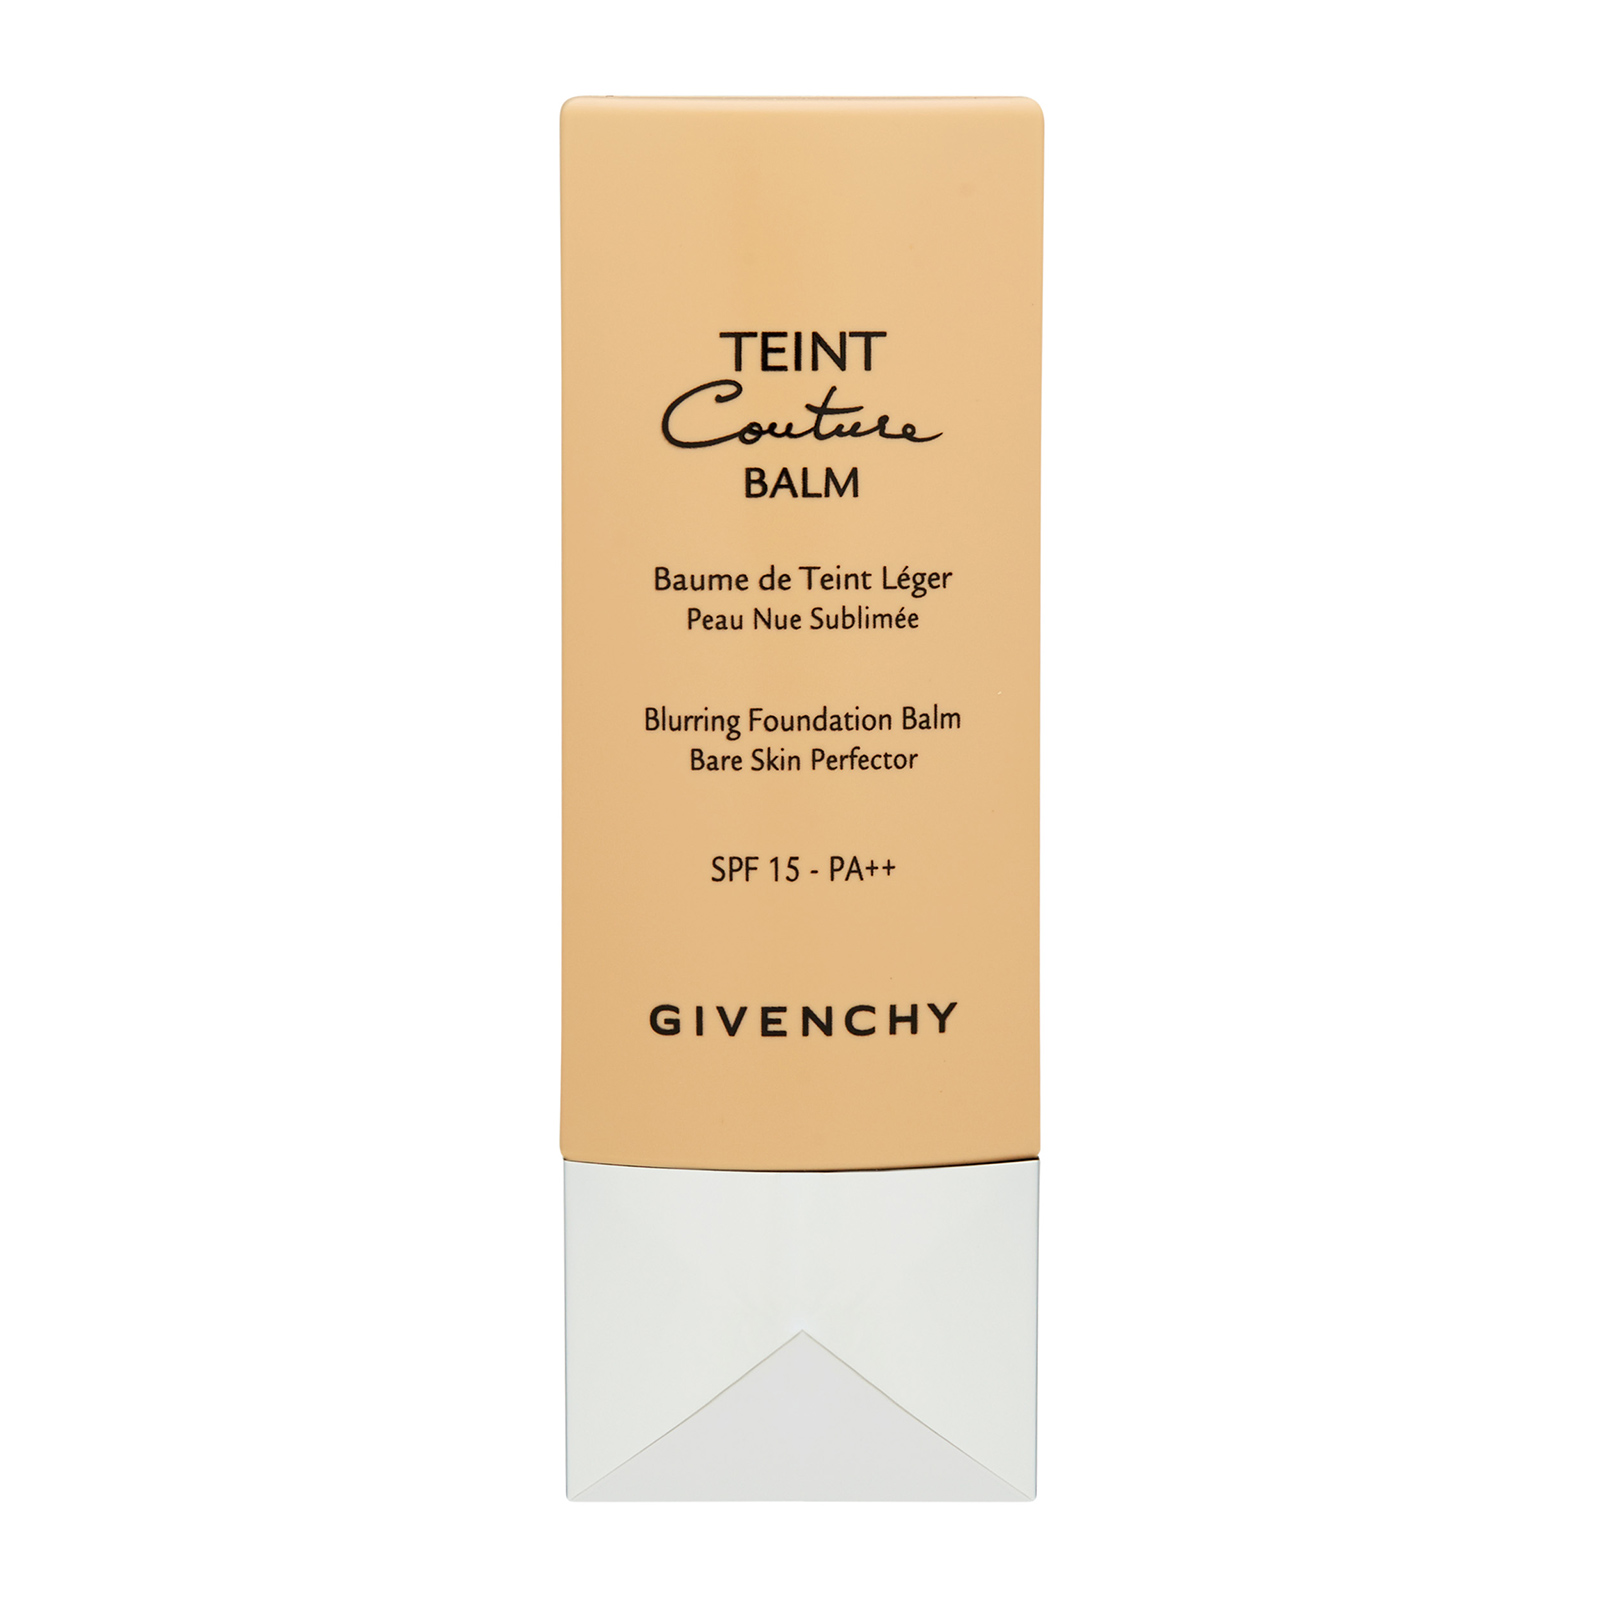 Givenchy  Teint Couture Balm Blurring Foundation Balm SPF15 – PA++ 2 Nude Shell, 1oz, 30ml from Cosme-De.com